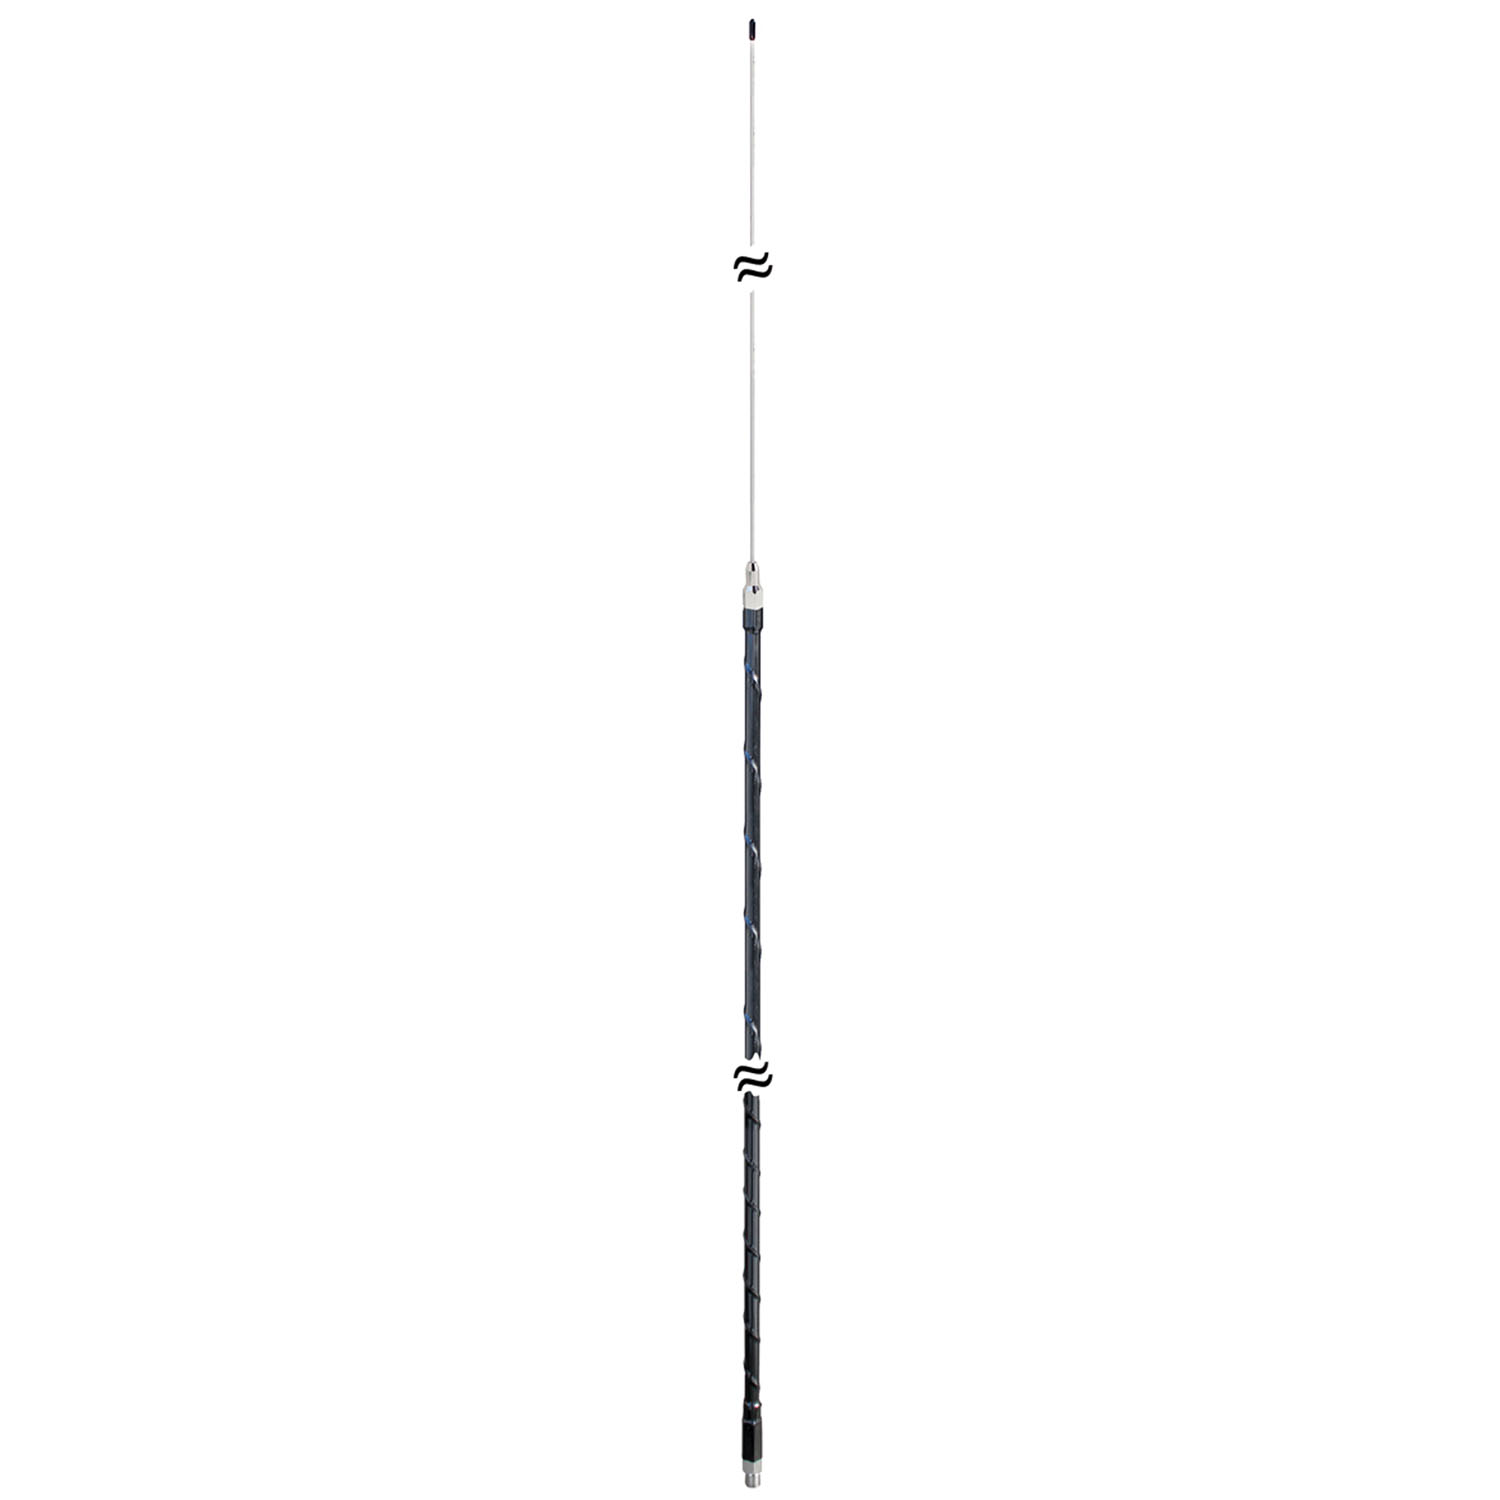 PCF40 - ProComm Heavy Duty 40 Meter Antenna